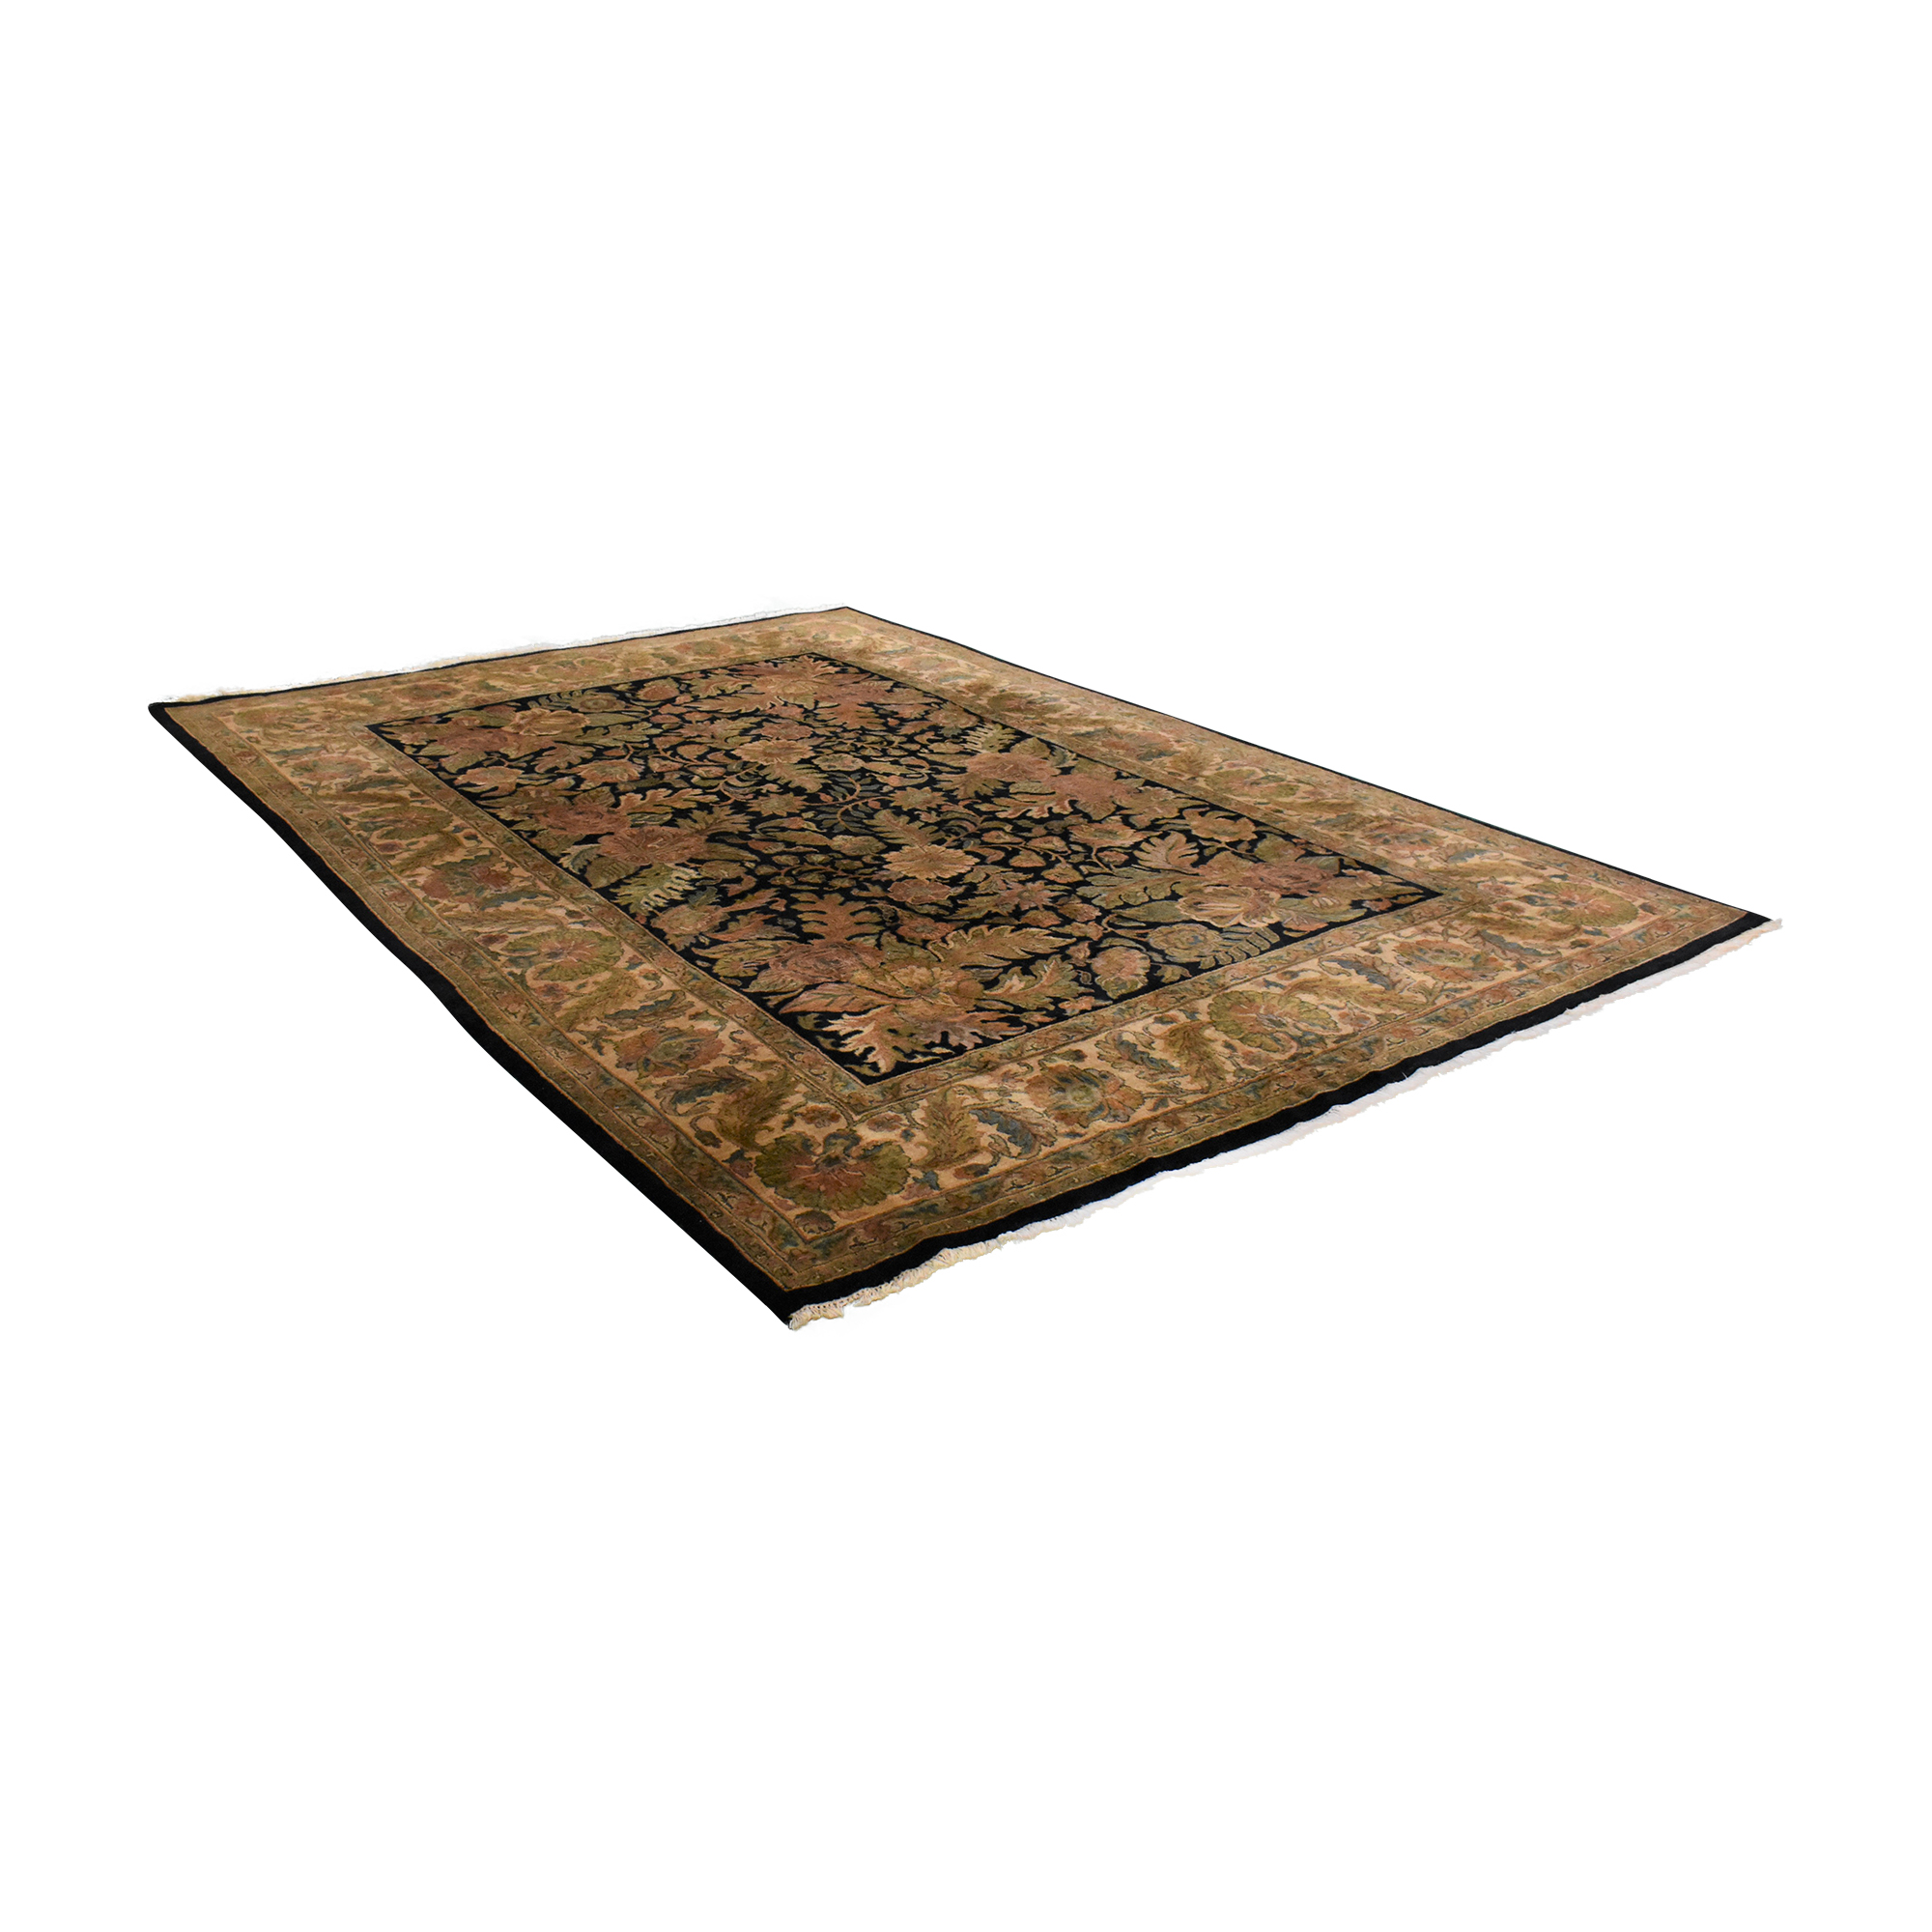 Ethan Allen Ethan Allen Patterned Rug price